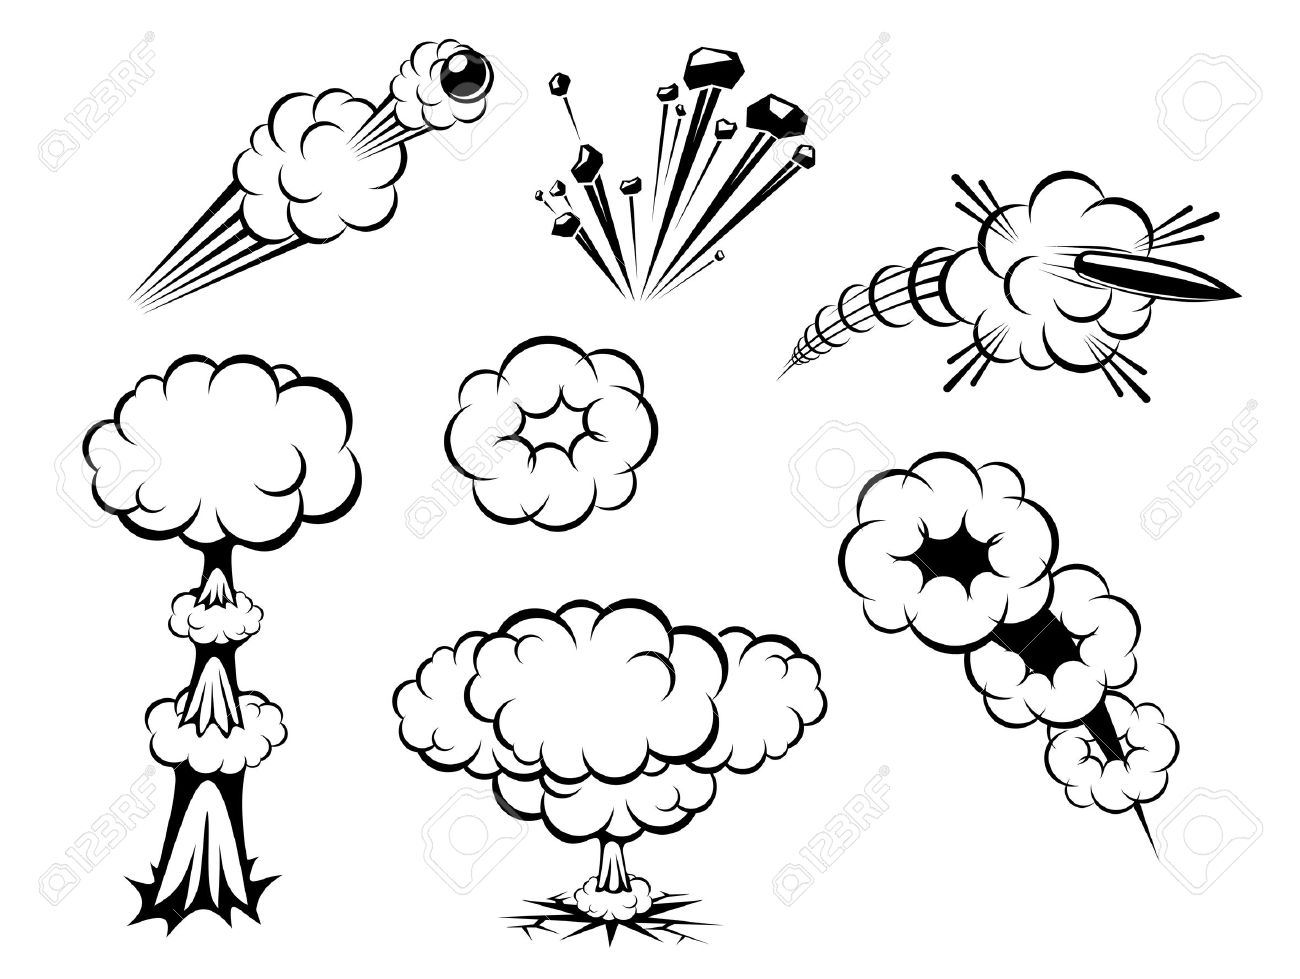 1,430 Cartoon Smoke Bomb Stock Illustrations, Cliparts And Royalty ...